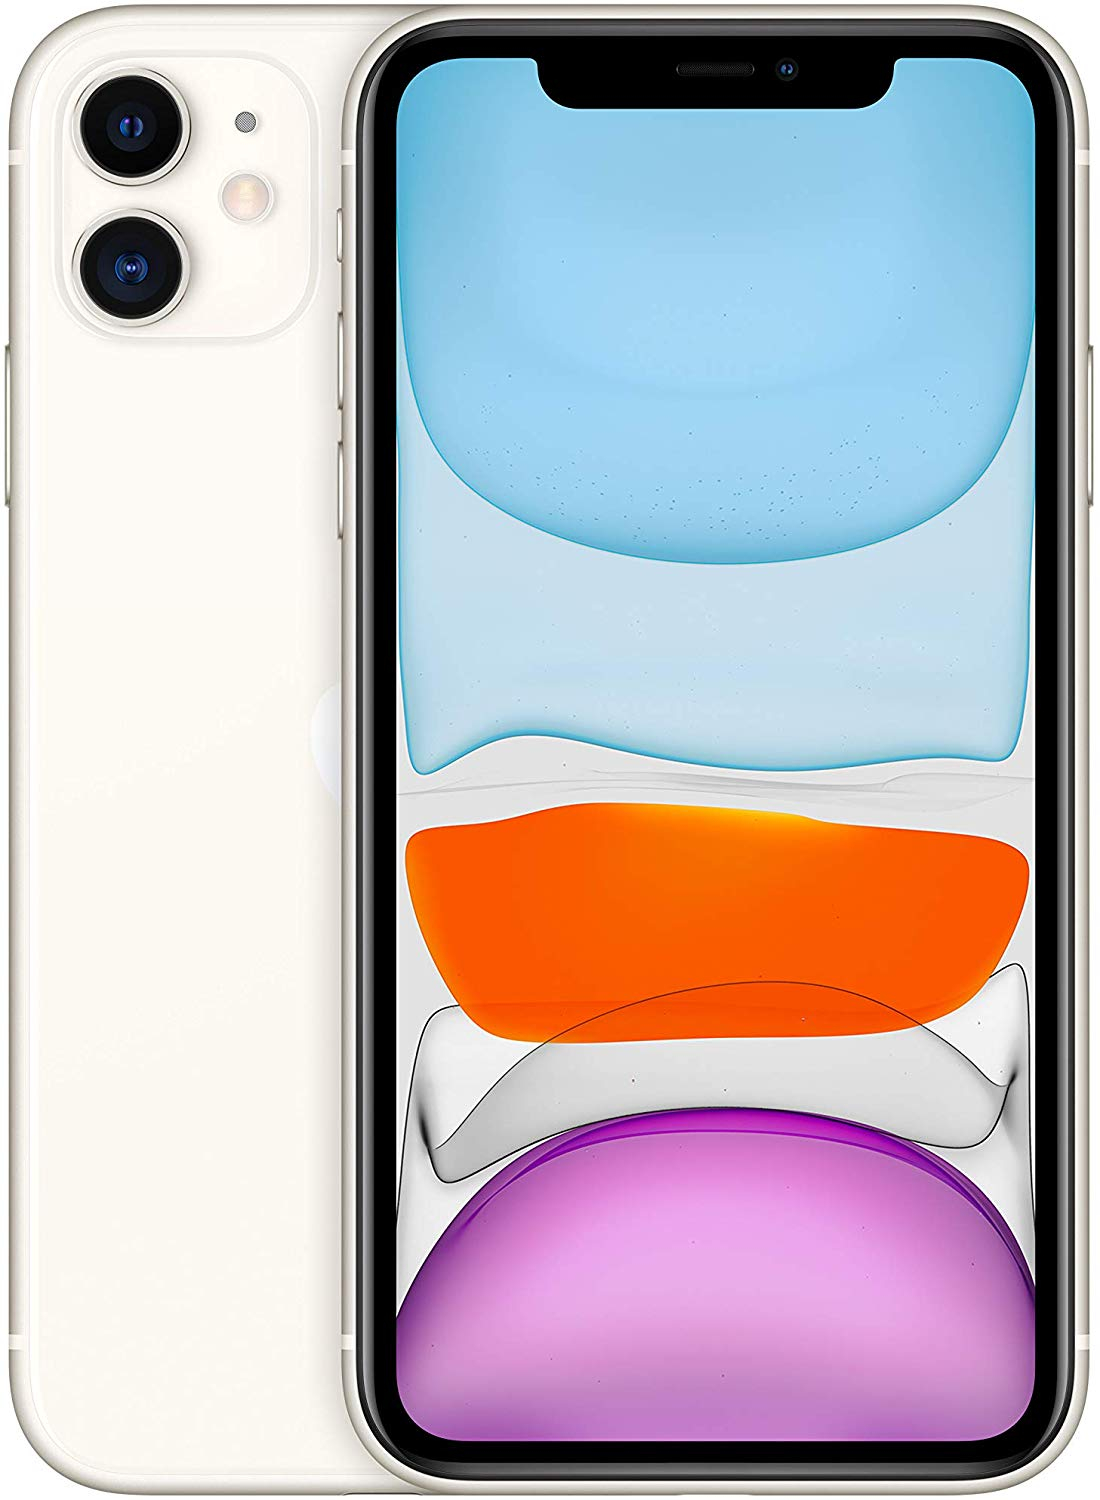 Phone Apple IPhone 11, White Color (White), 6 GB RAM, 64 GB Internal Memory, OLED Display 5,8